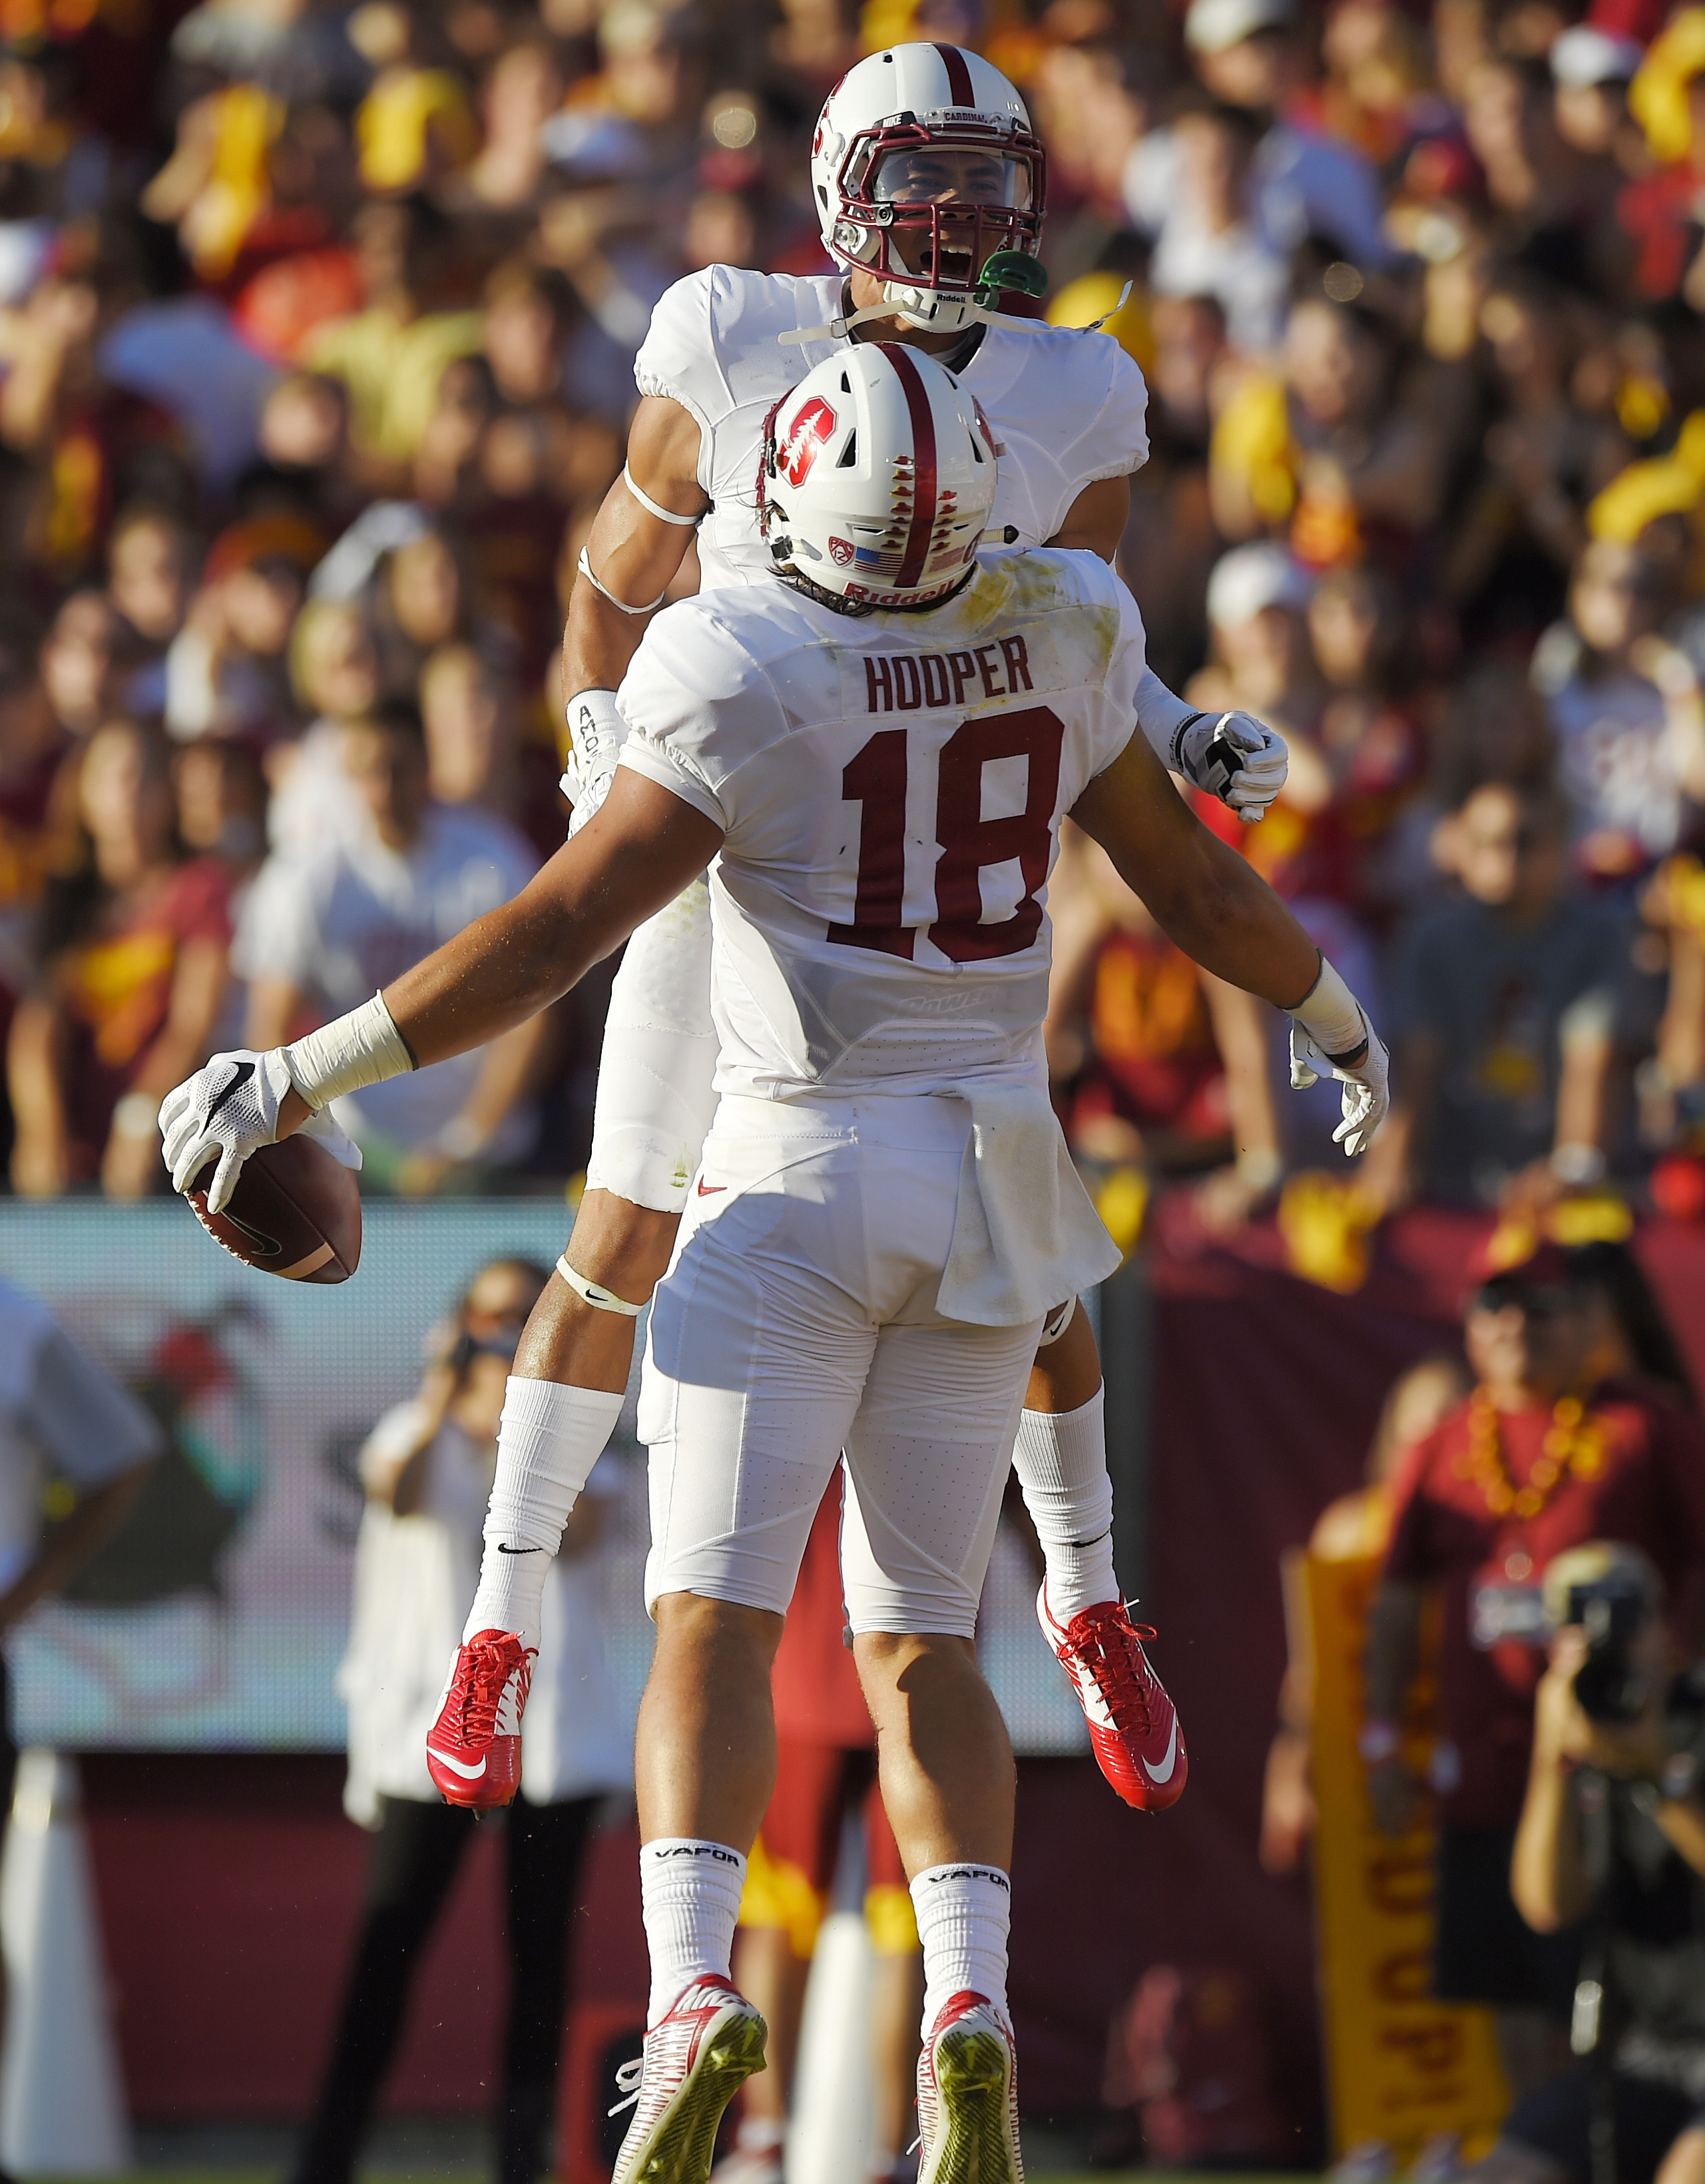 Stanford tight end Austin Hooper, below, celebrates along with wide receiver Michael Rector after scoring a touchdown during the first half of an NCAA college football game against Southern California, Saturday, Sept. 19, 2015, in Los Angeles. (AP Photo/M